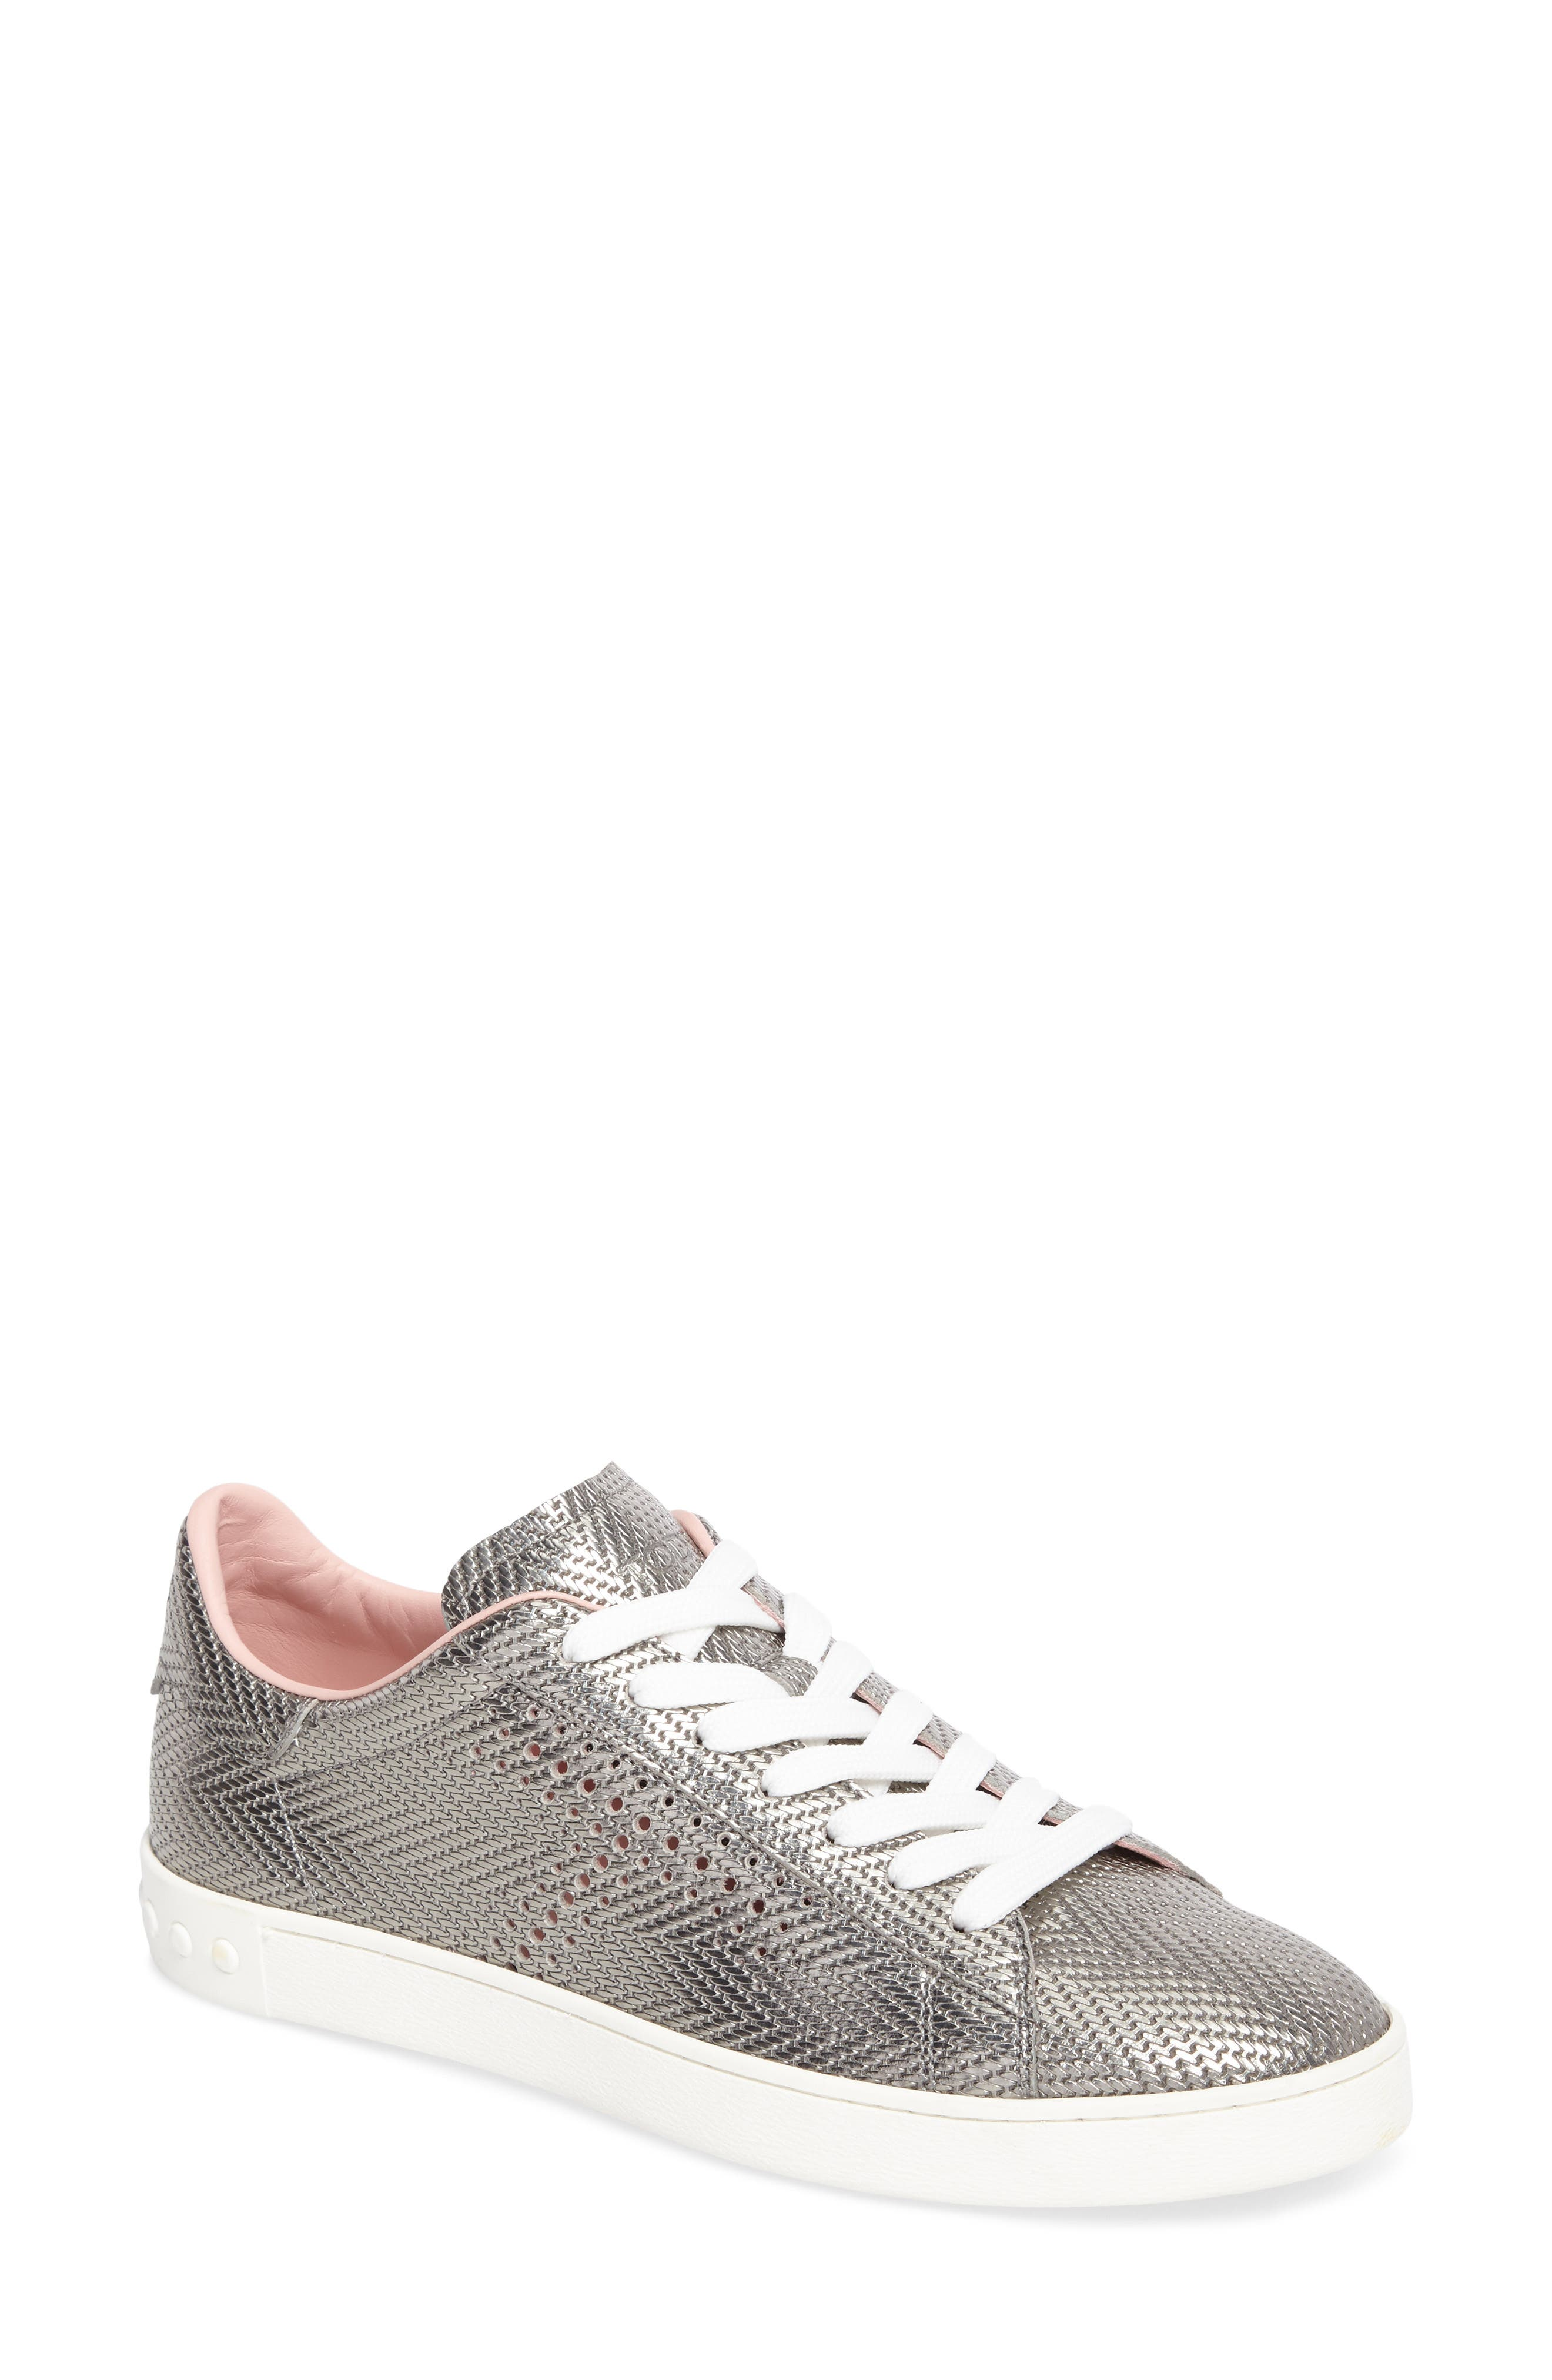 Alternate Image 1 Selected - Tod's Perforated T Sneaker (Women)